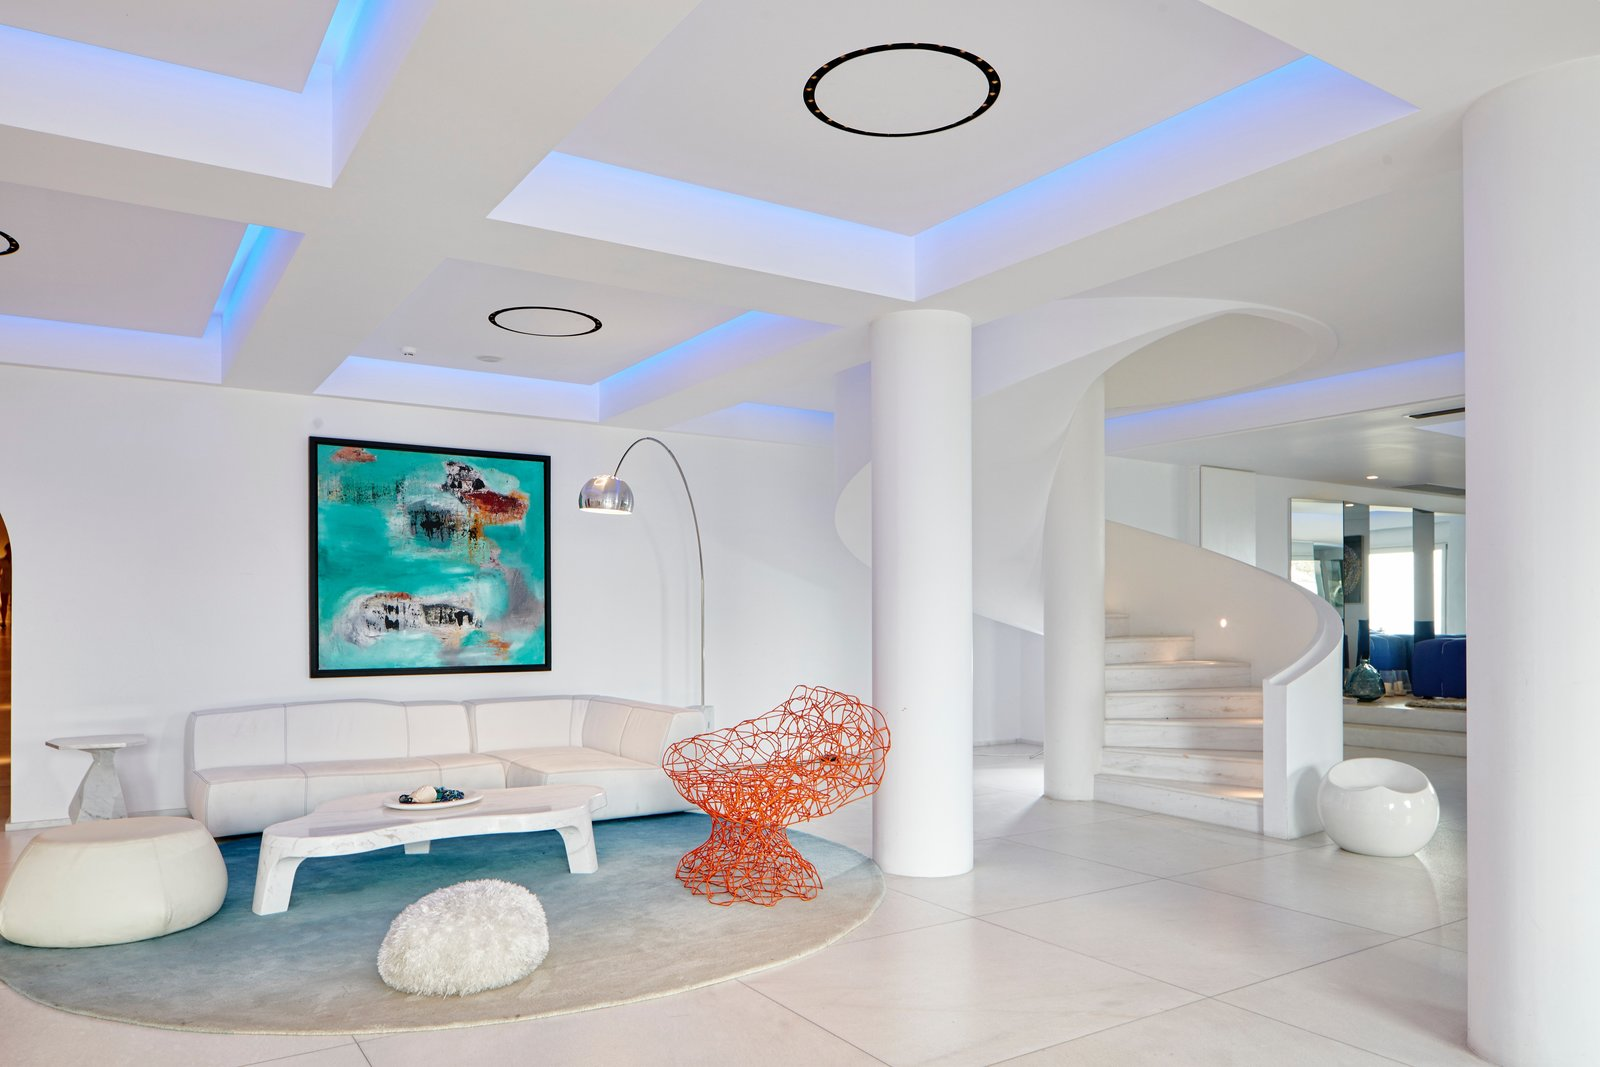 Pillars and a spiral staircase act as modern interpretations of ancient Greek design themes. The orange Coralla chair was designed by the Campana Brothers for Edra and makes a sculptural statement. Tagged: Living Room, Accent Lighting, Floor Lighting, Chair, Ottomans, Rug Floor, Sectional, and Coffee Tables.  Photo 7 of 12 in This Revived Greek Resort Will Soon Be at the Top of Your List